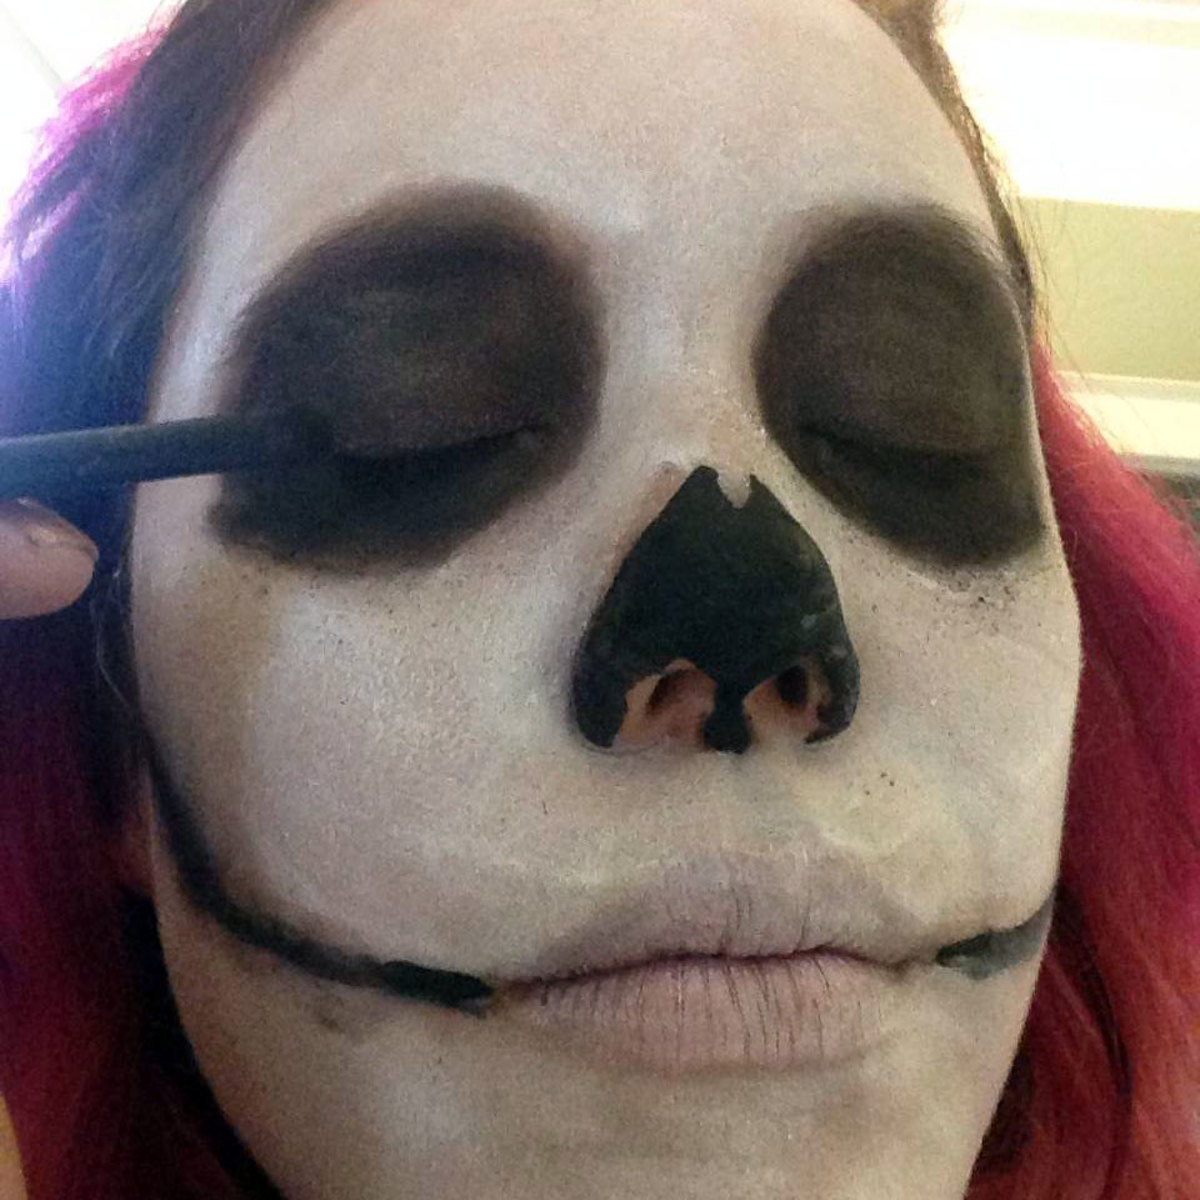 Use eyeshadow to shade in the eye sockets.